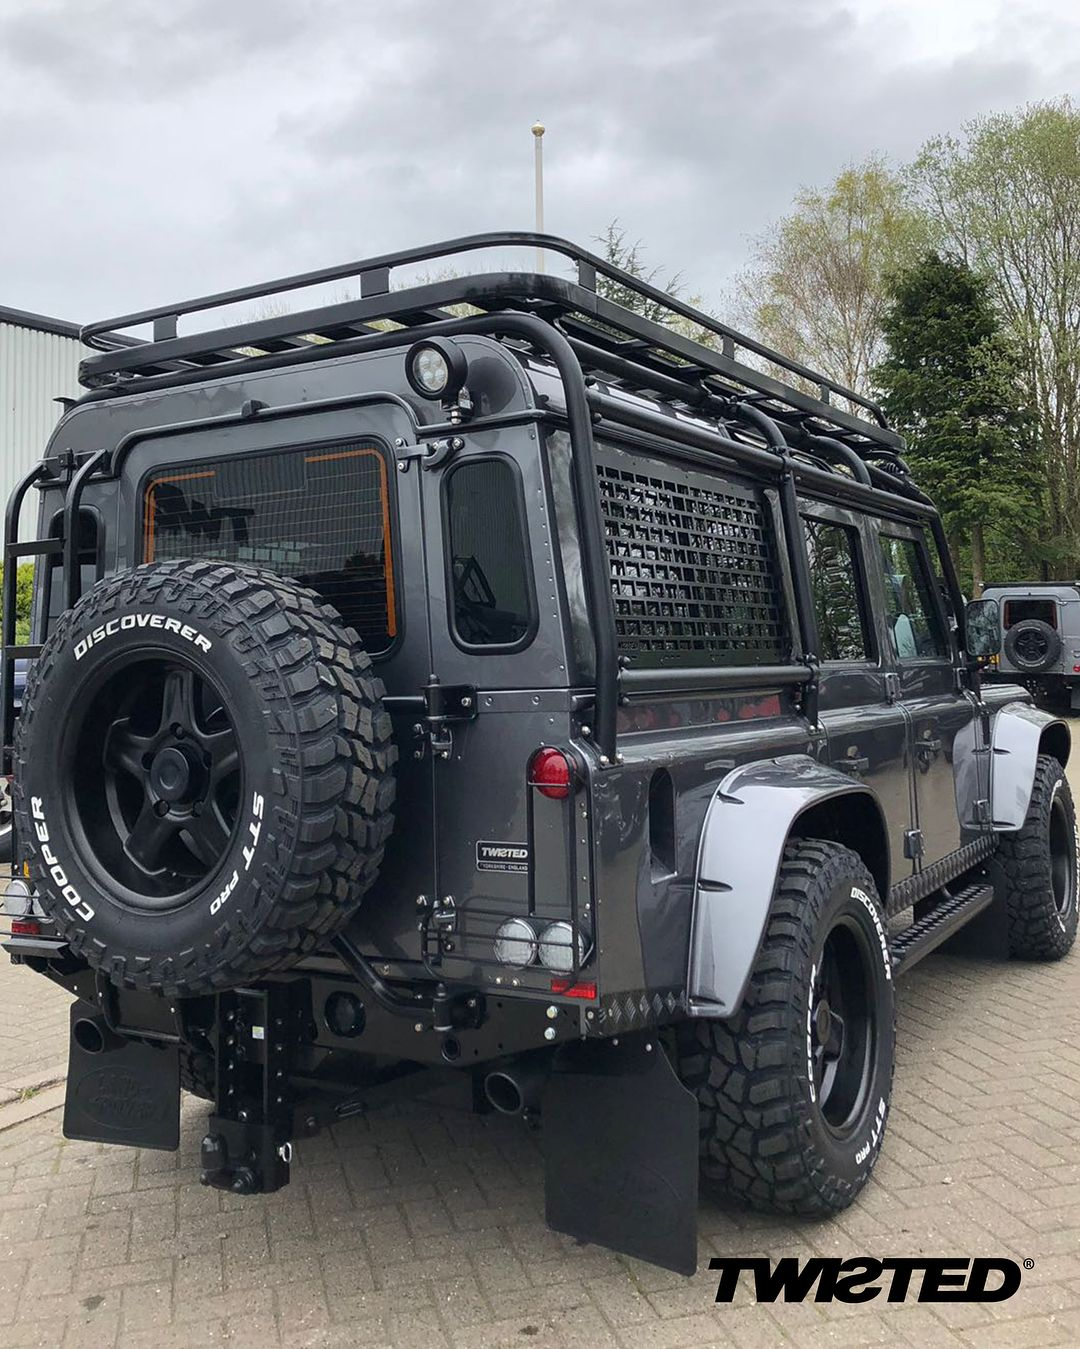 We Could Spend All Day Looking At This Build Swipe For More Photos Defender Landrover Landroverde Land Rover Defender Land Rover Land Rover Defender 110